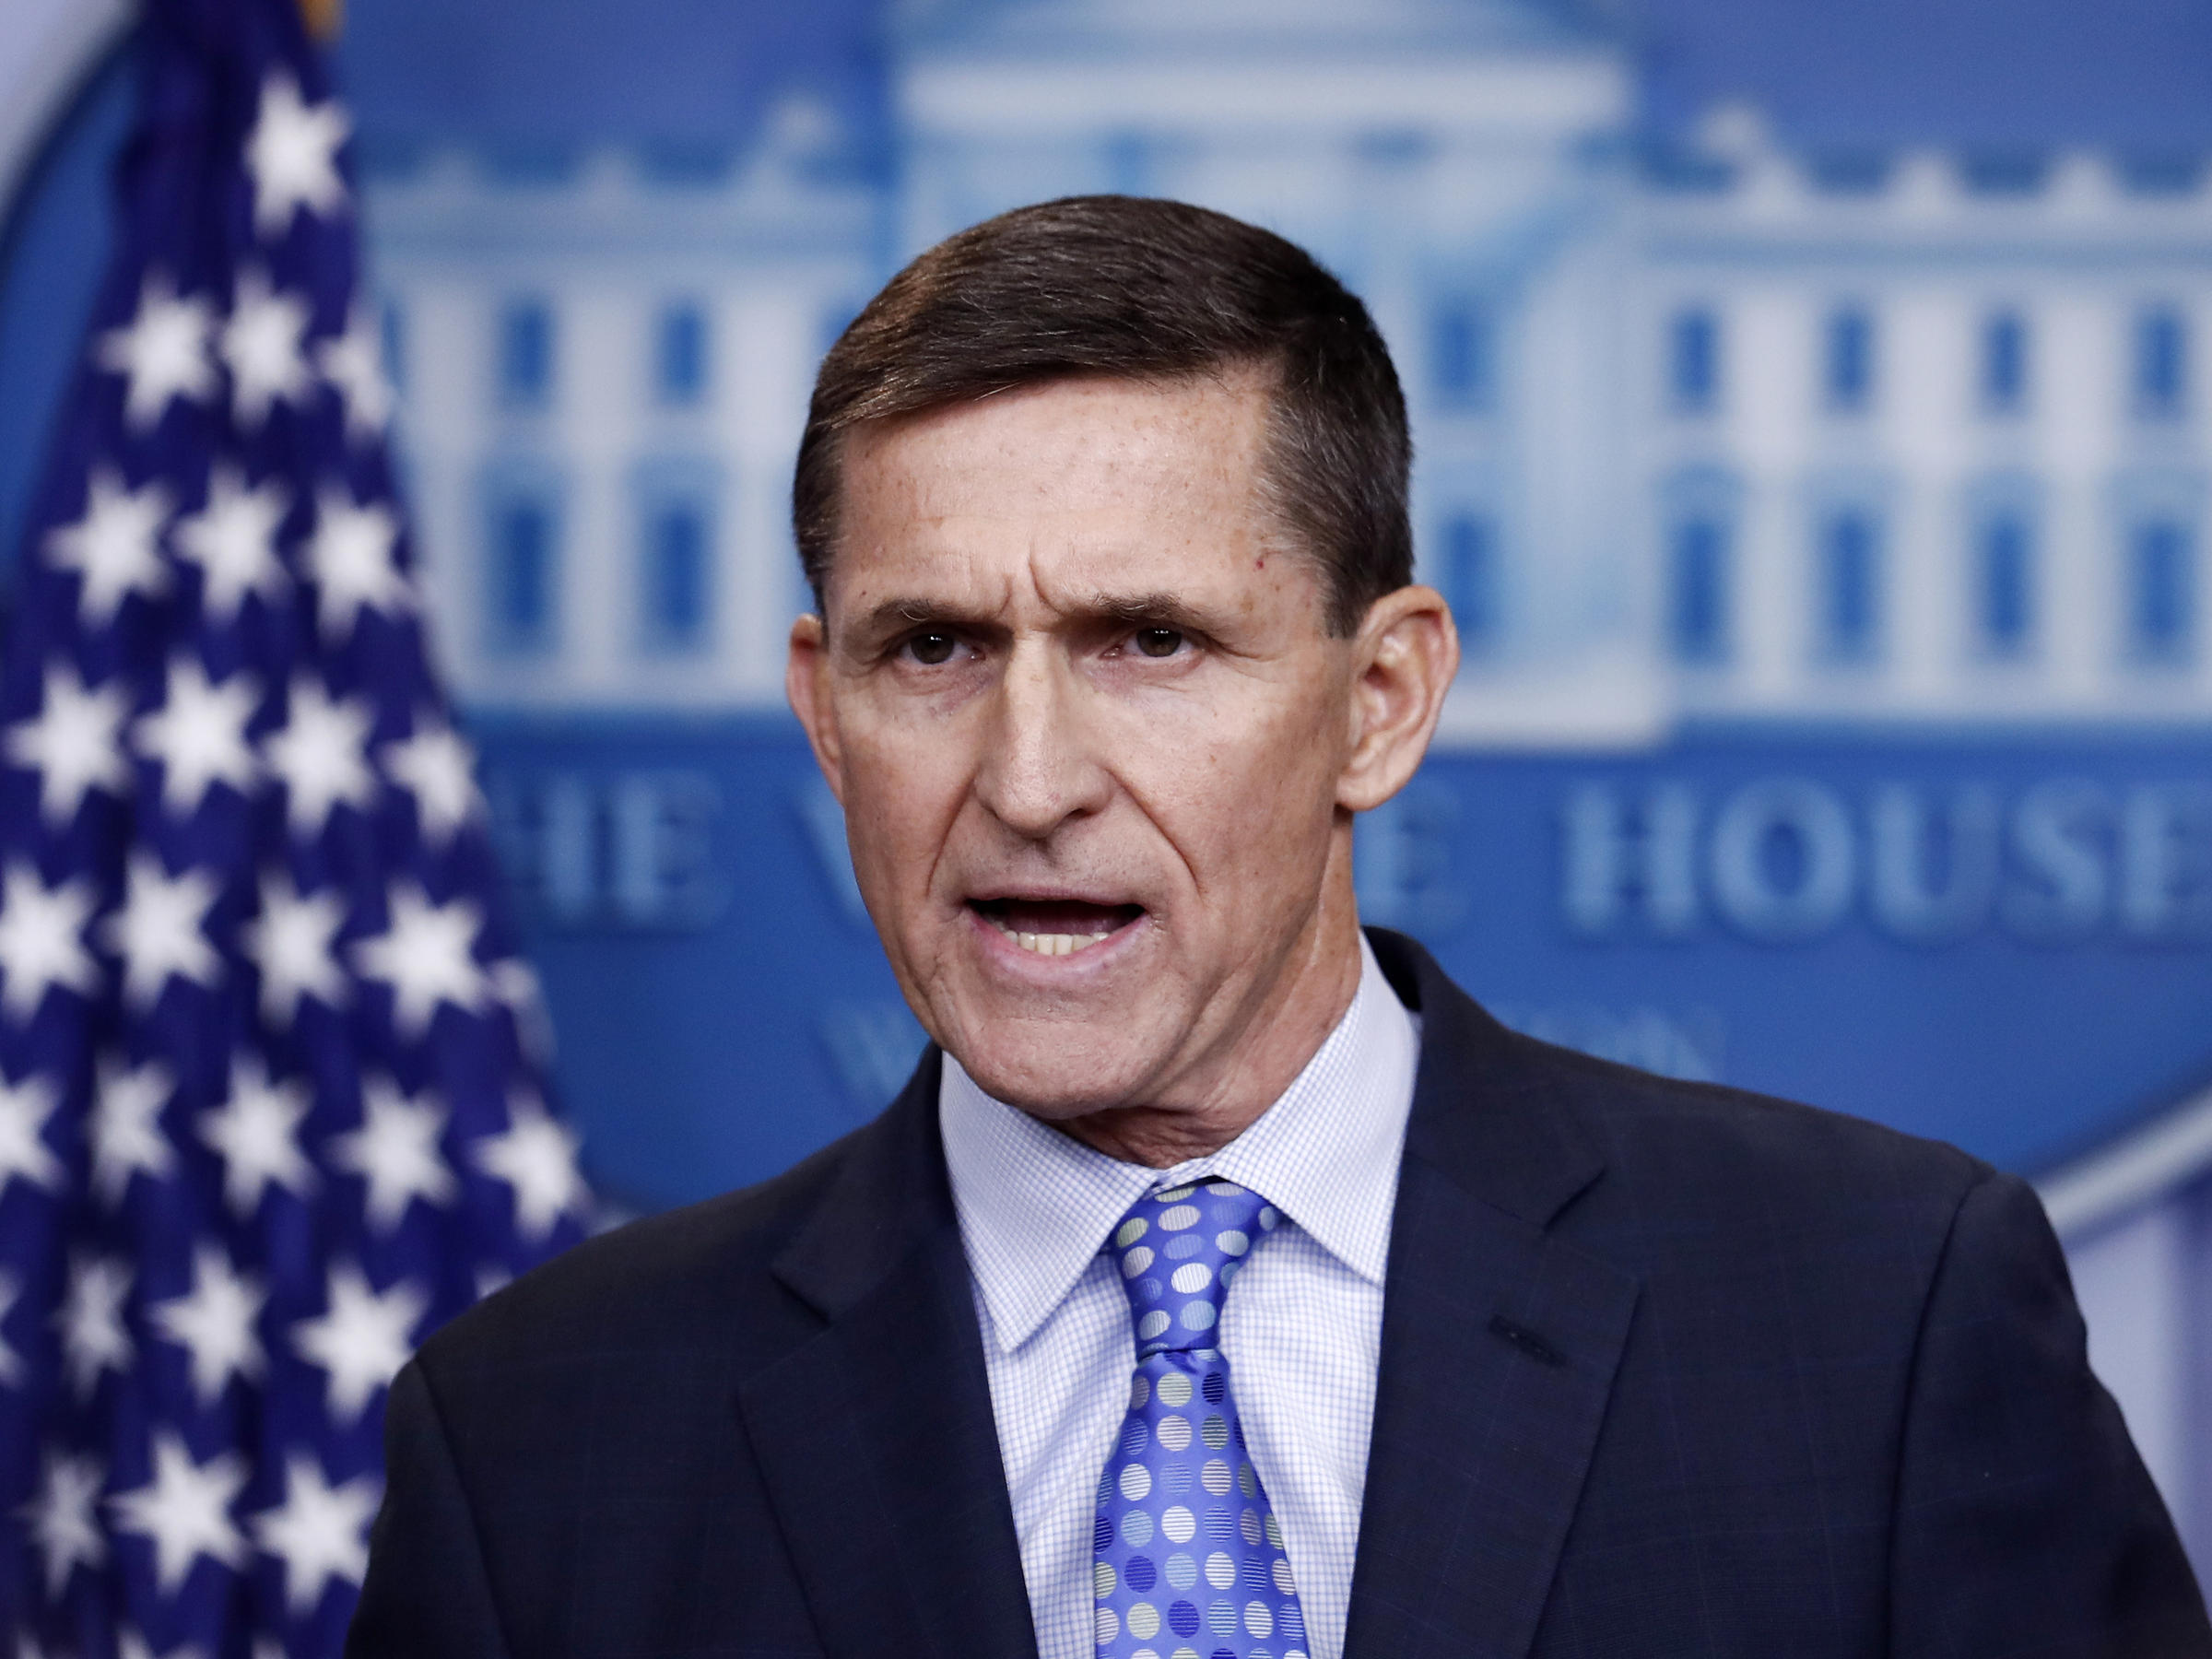 Flynn to invoke 5th Amendment, AP has learned